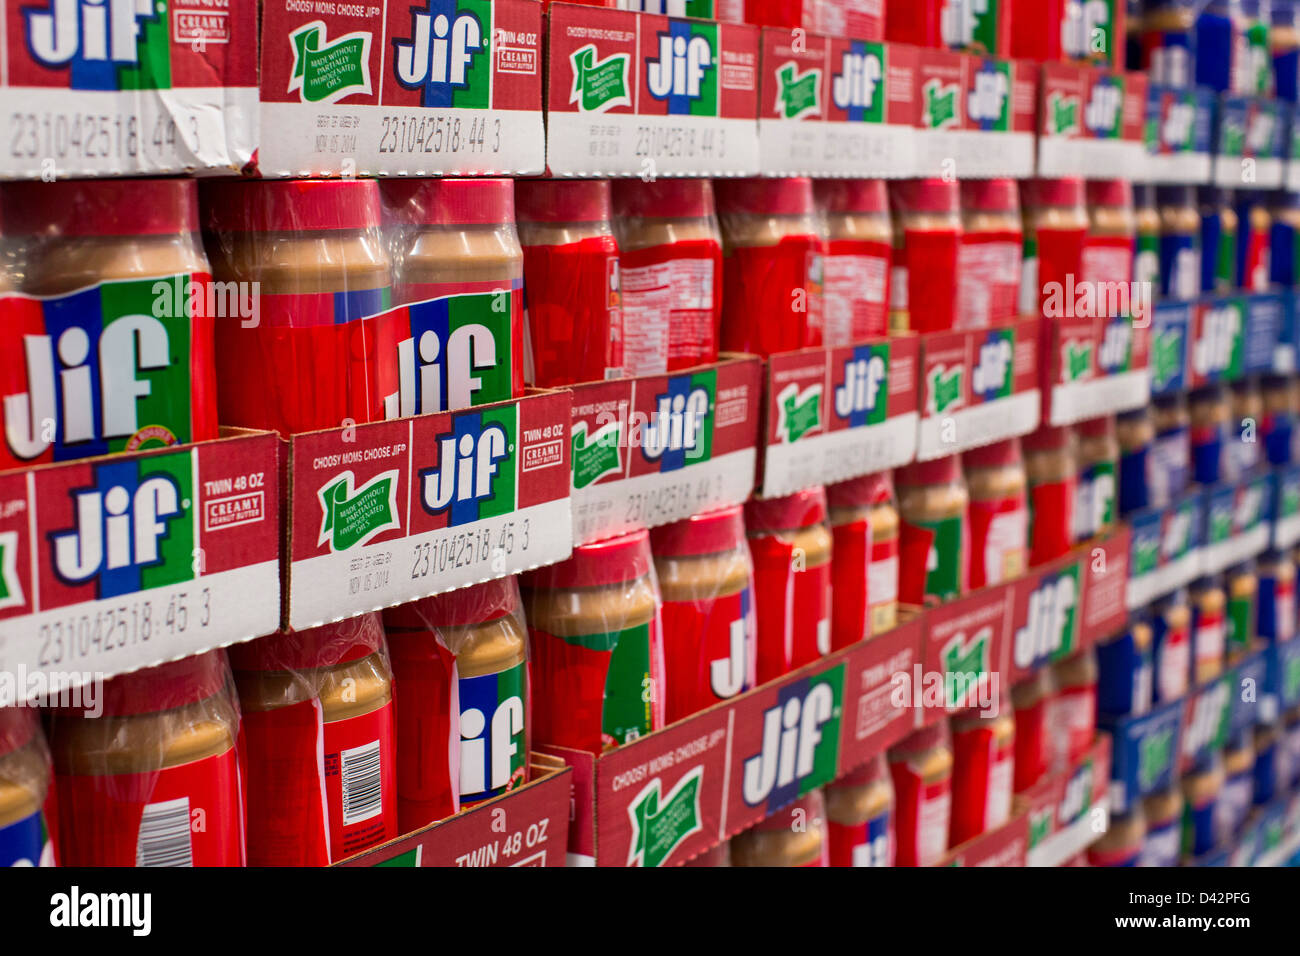 Jif peanut butter on display at a costco wholesale warehouse club jif peanut butter on display at a costco wholesale warehouse club thecheapjerseys Gallery